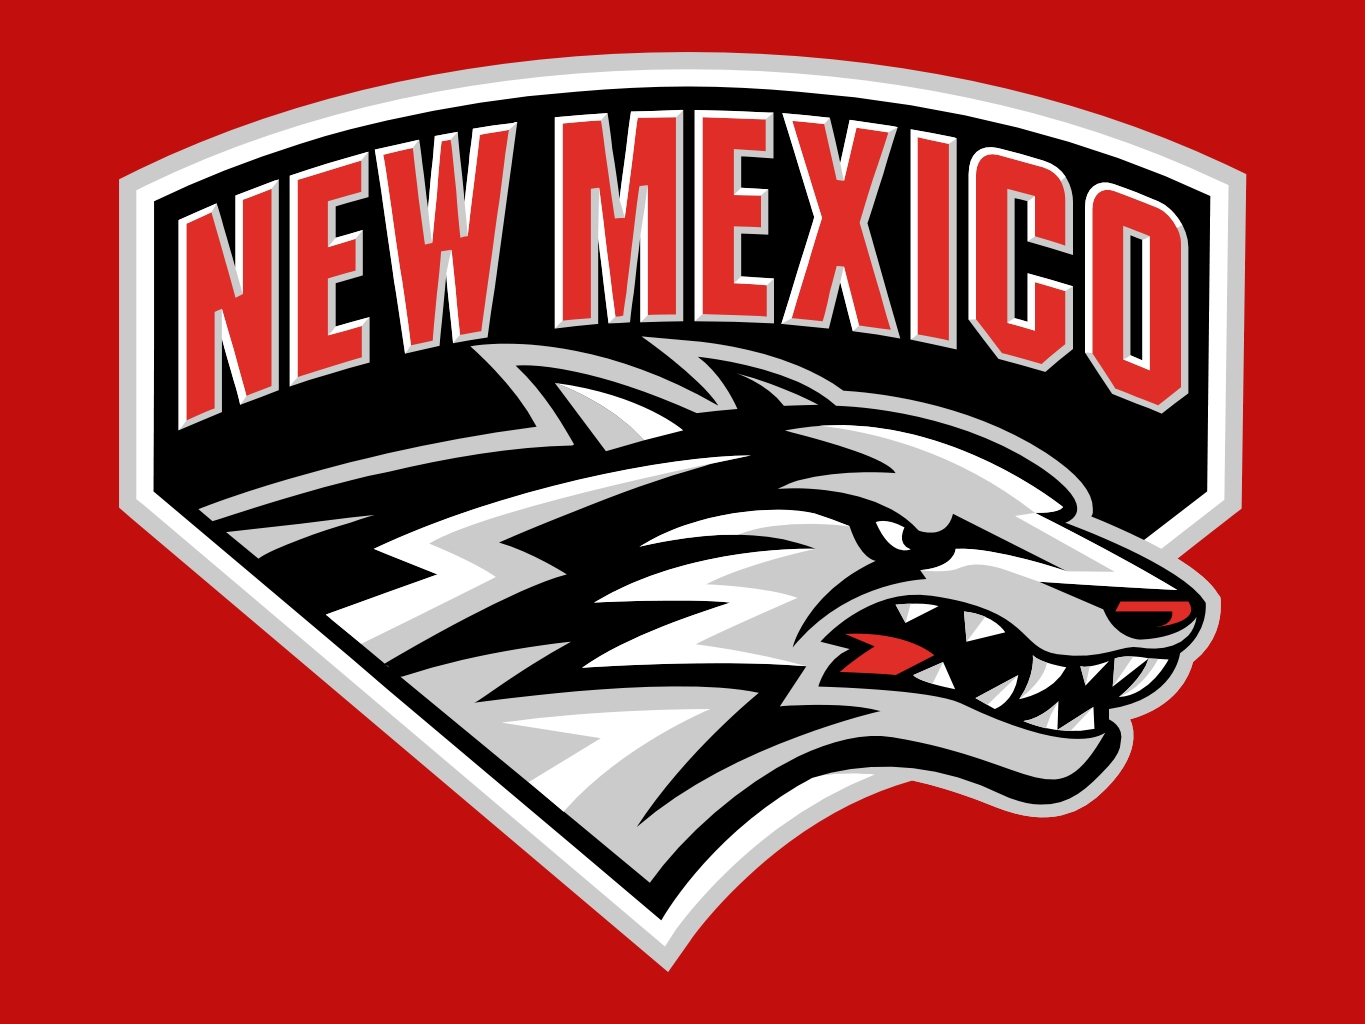 6 new mexico - biggest blowouts college football history